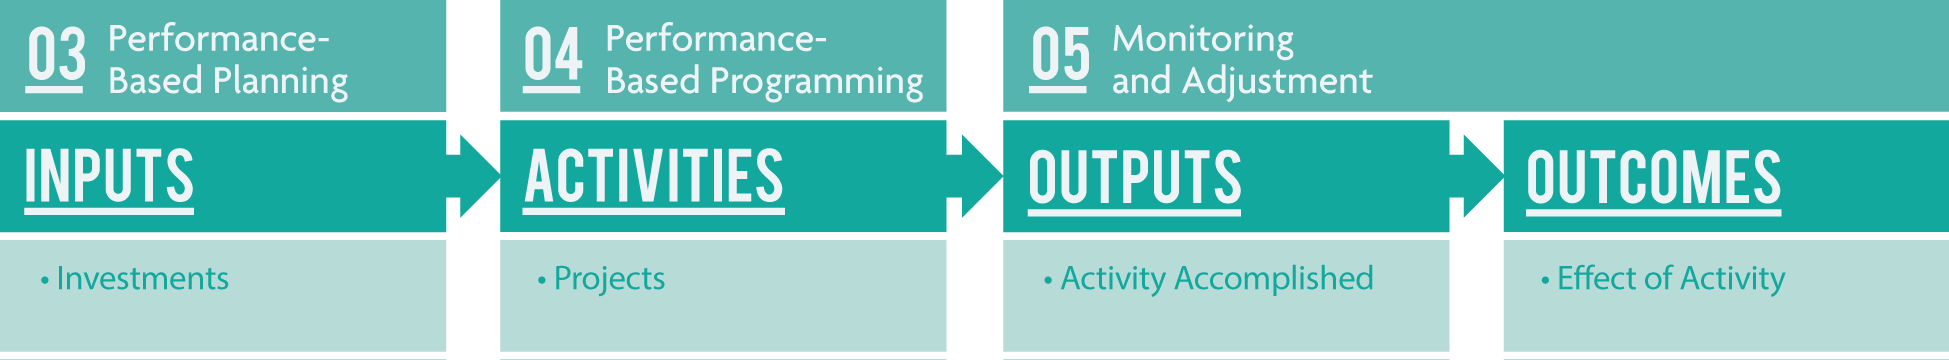 03 Performance-Based Planning: inputs (investments) flows to 04 Performance-Based Programming: activities (projects) flows to 05 Monitoring & Adjustment: outputs (activity accomplished) and outcomes (effect of activity).